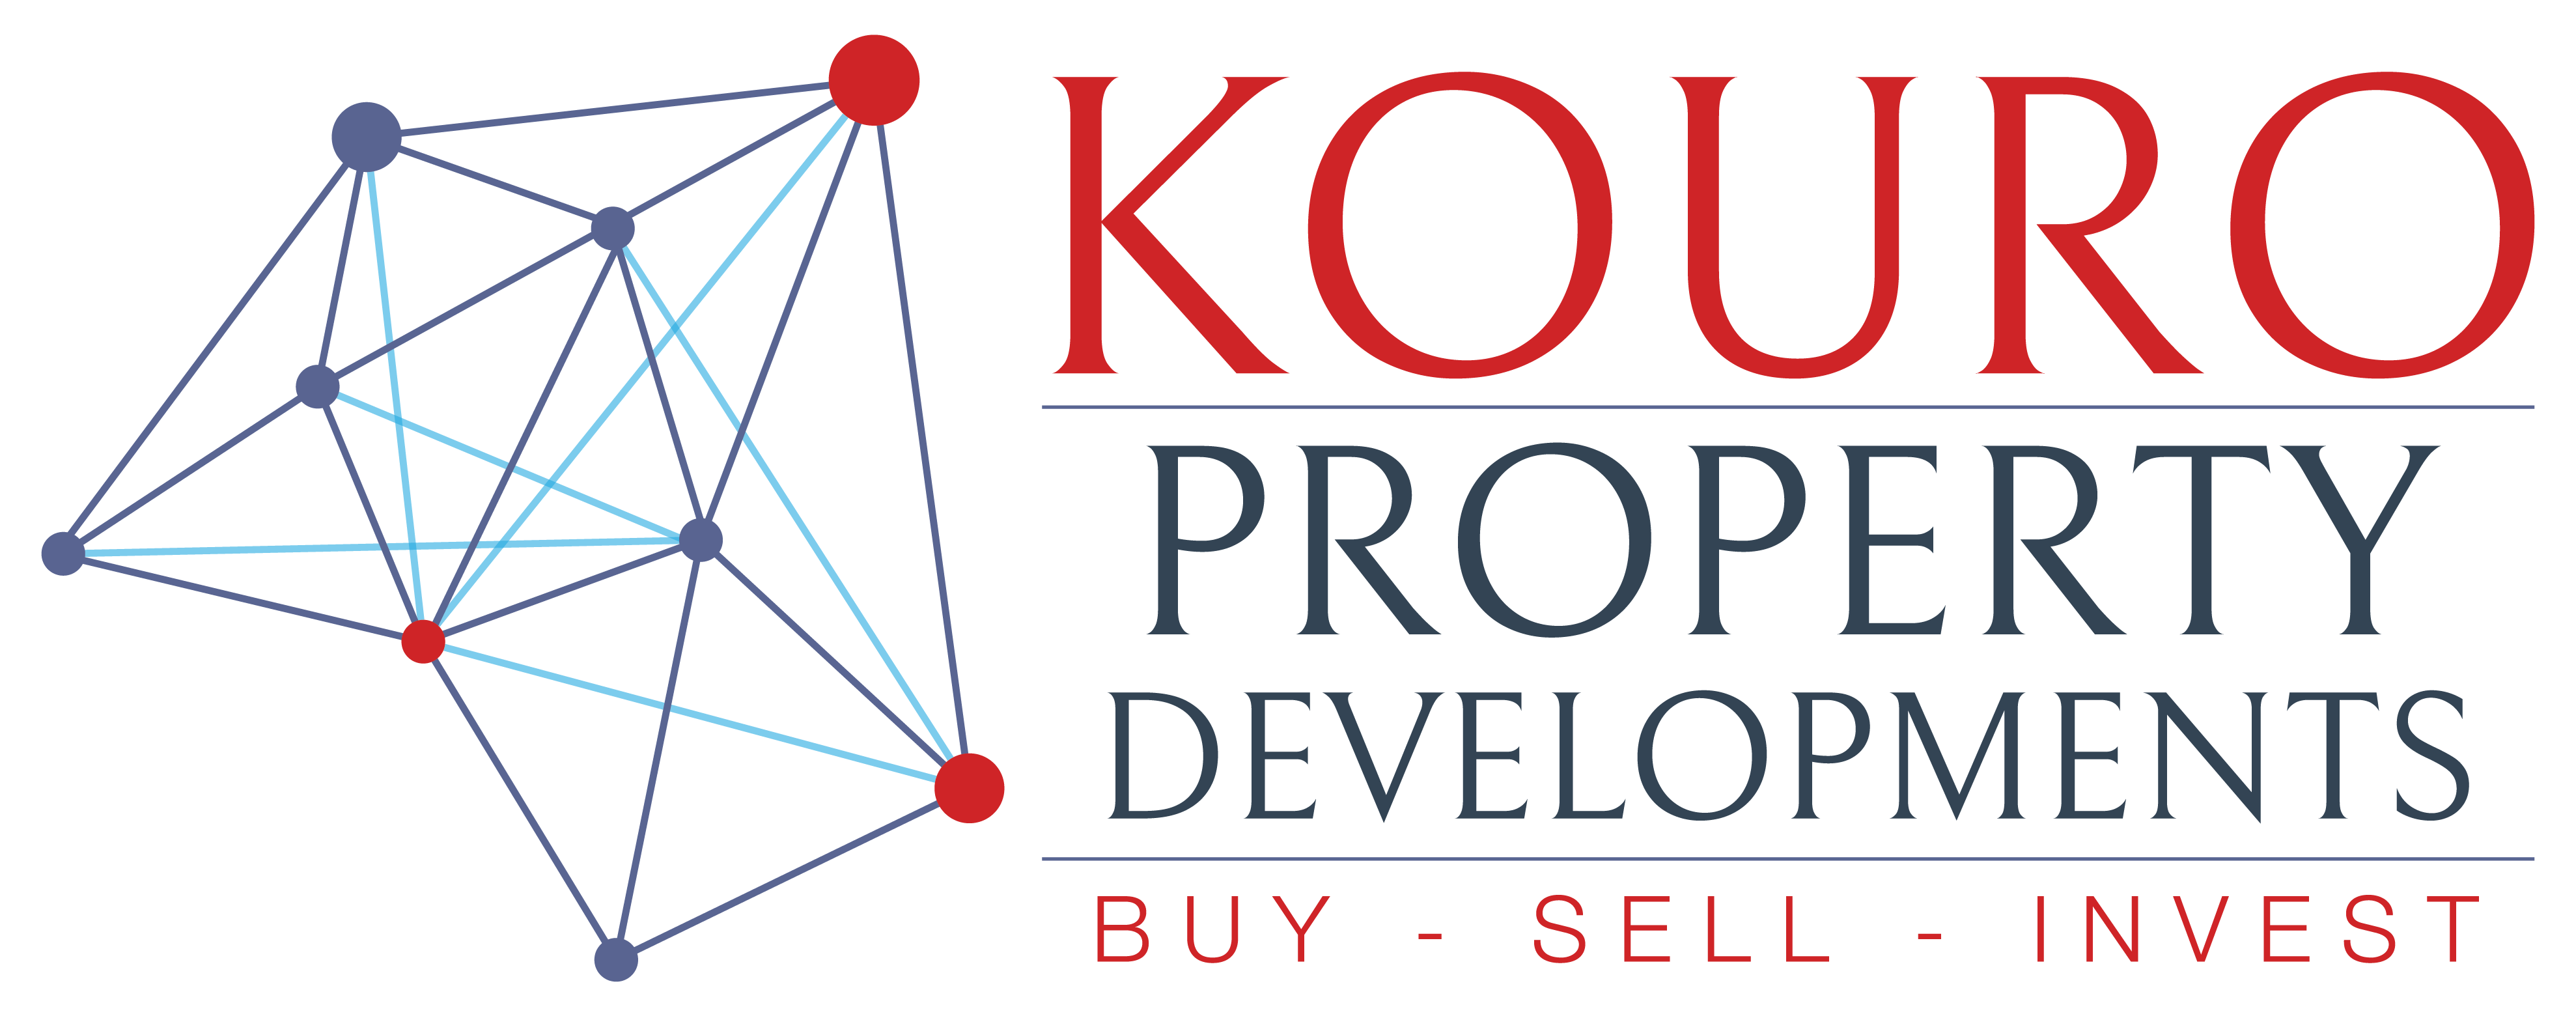 Kouro Property Developments Logo